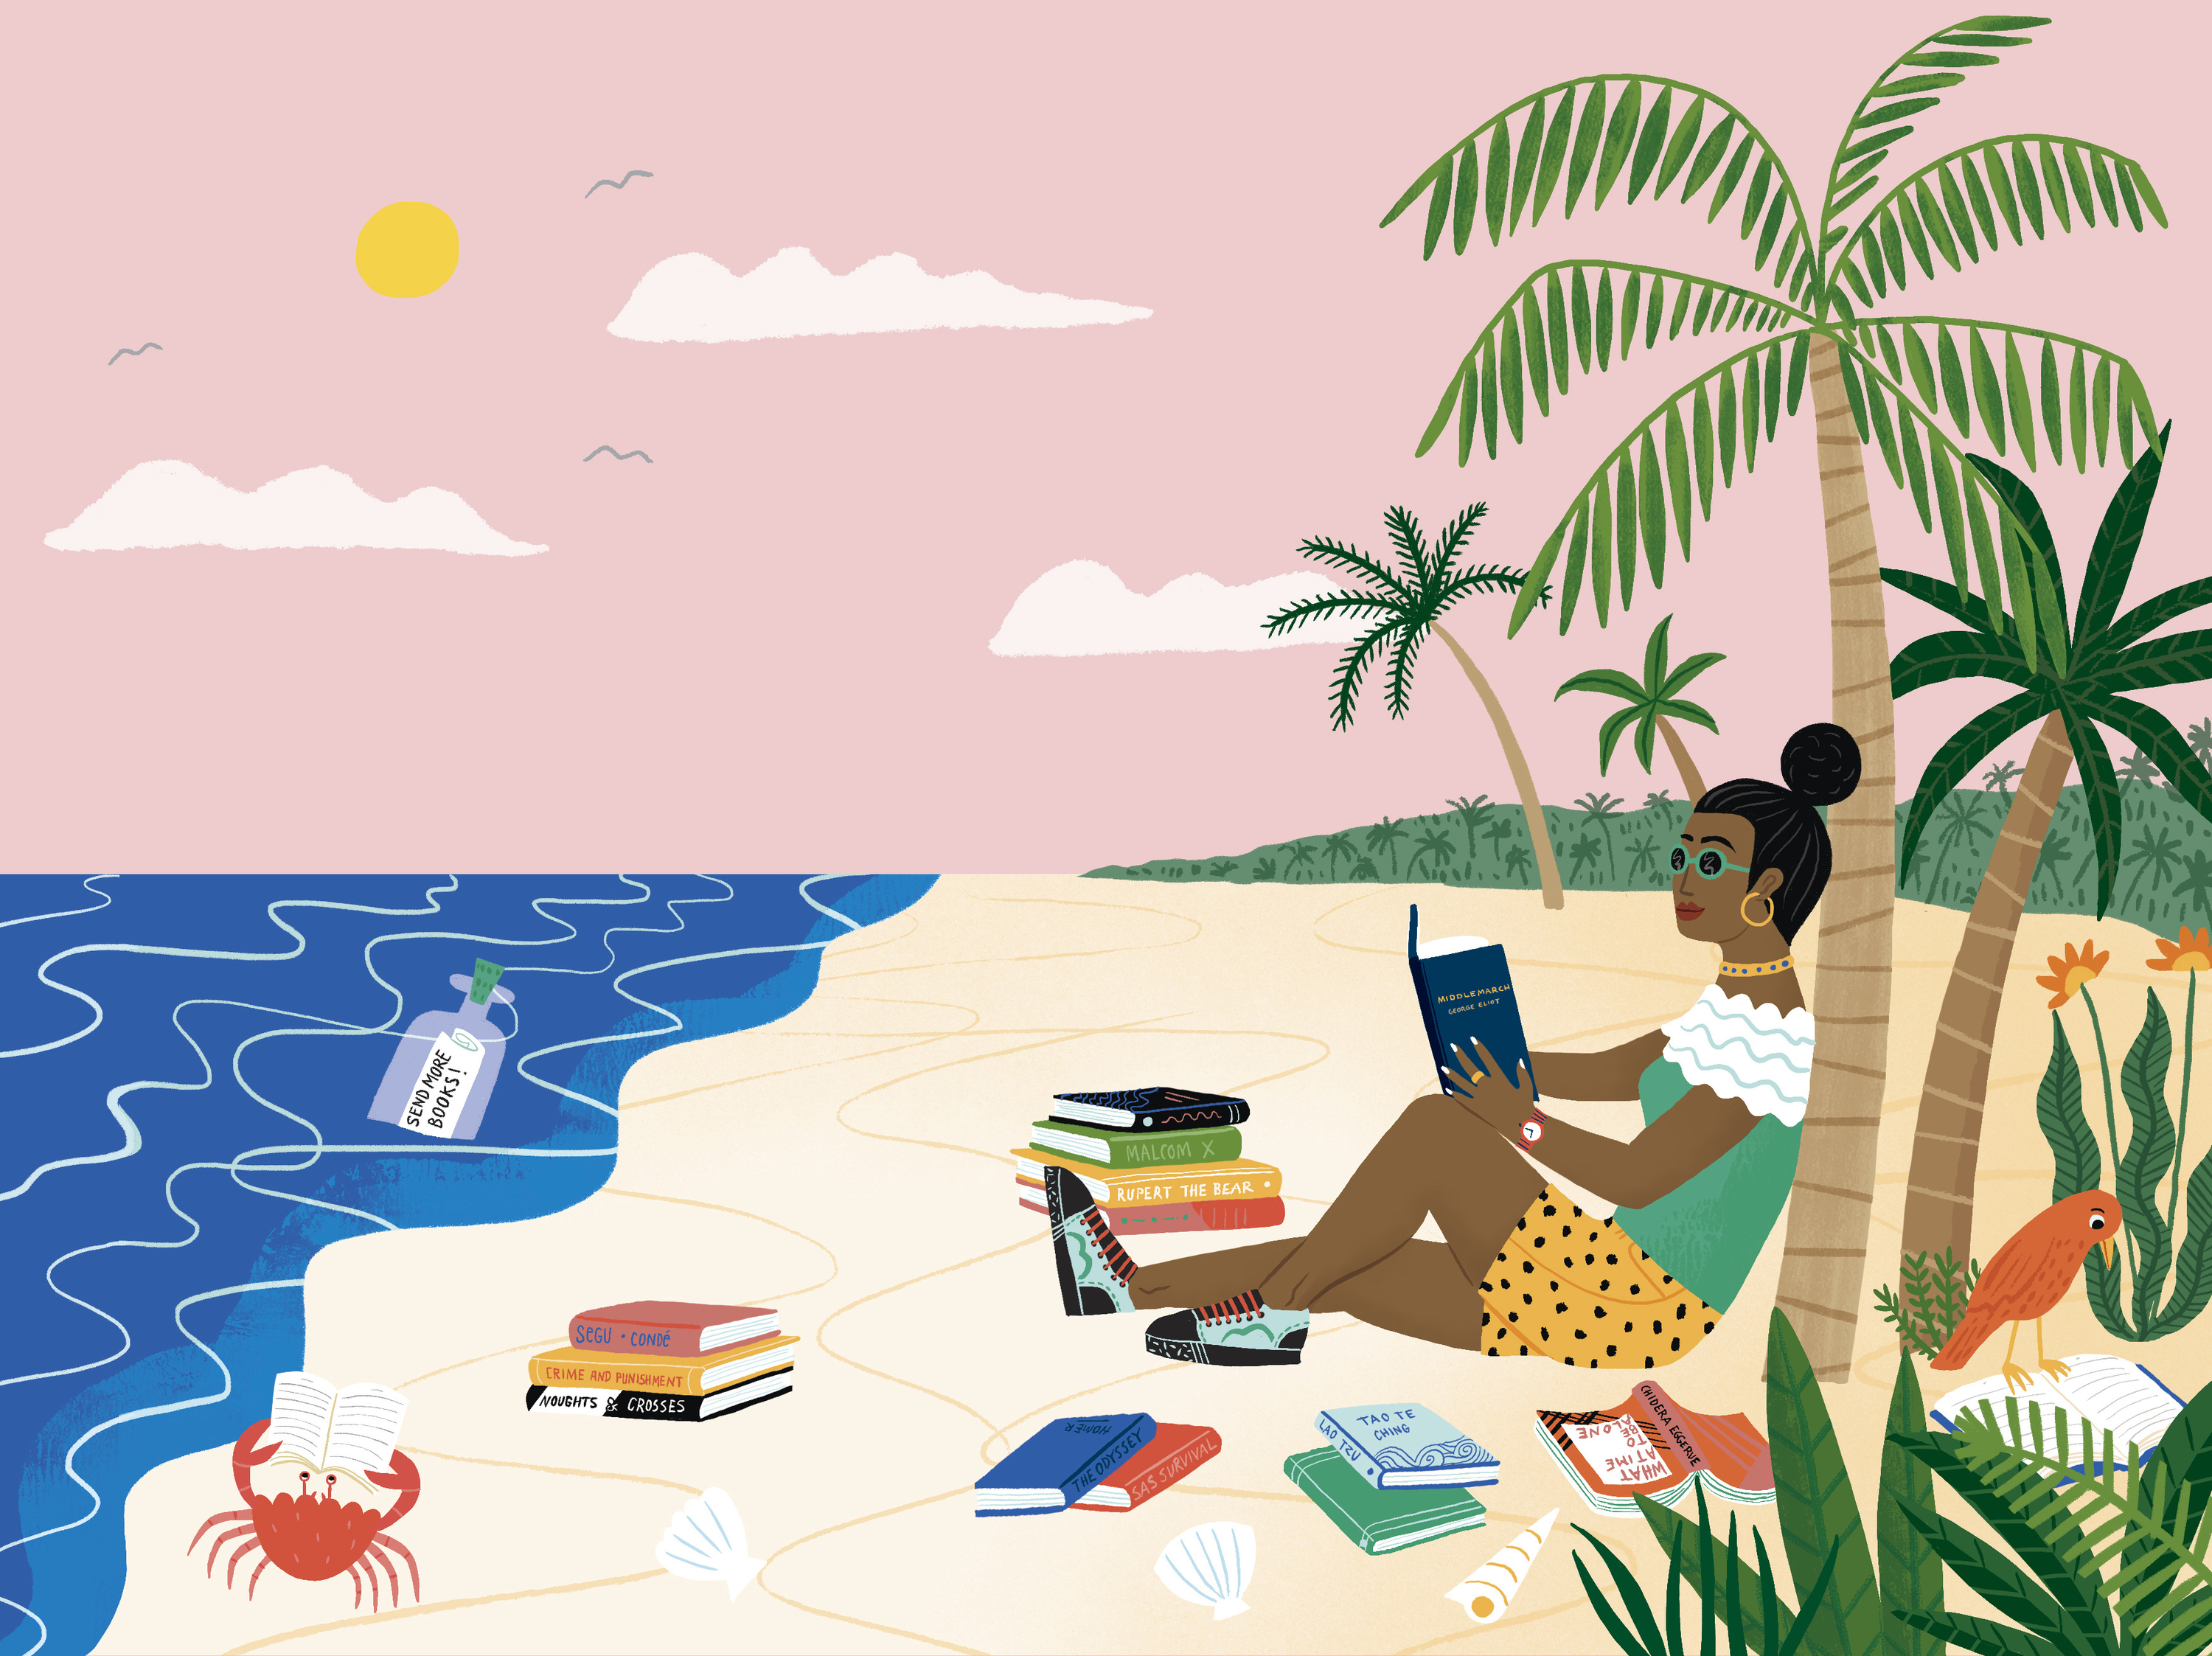 Sally Field, Riz Ahmed, Akala and more share their desert island books